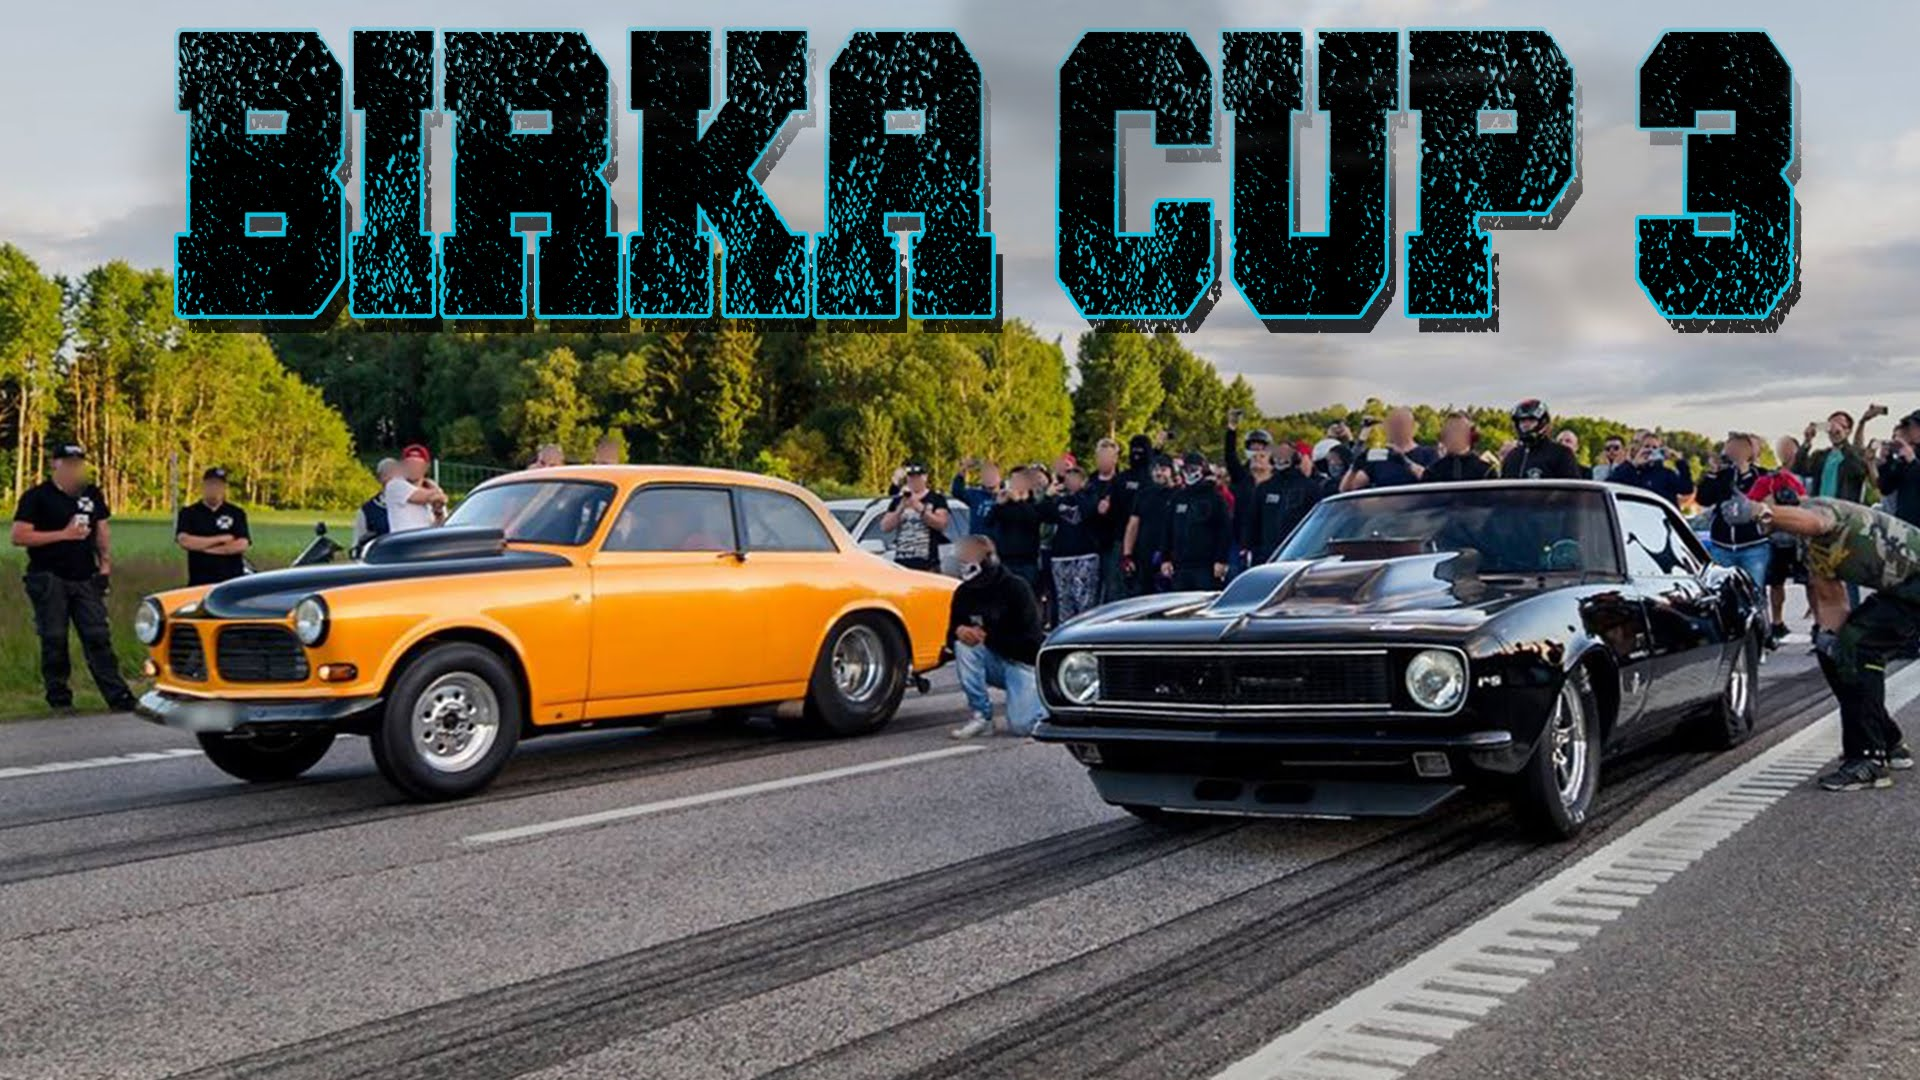 Birka Cup STREET RACE - Swedish CASH DAYS! 01